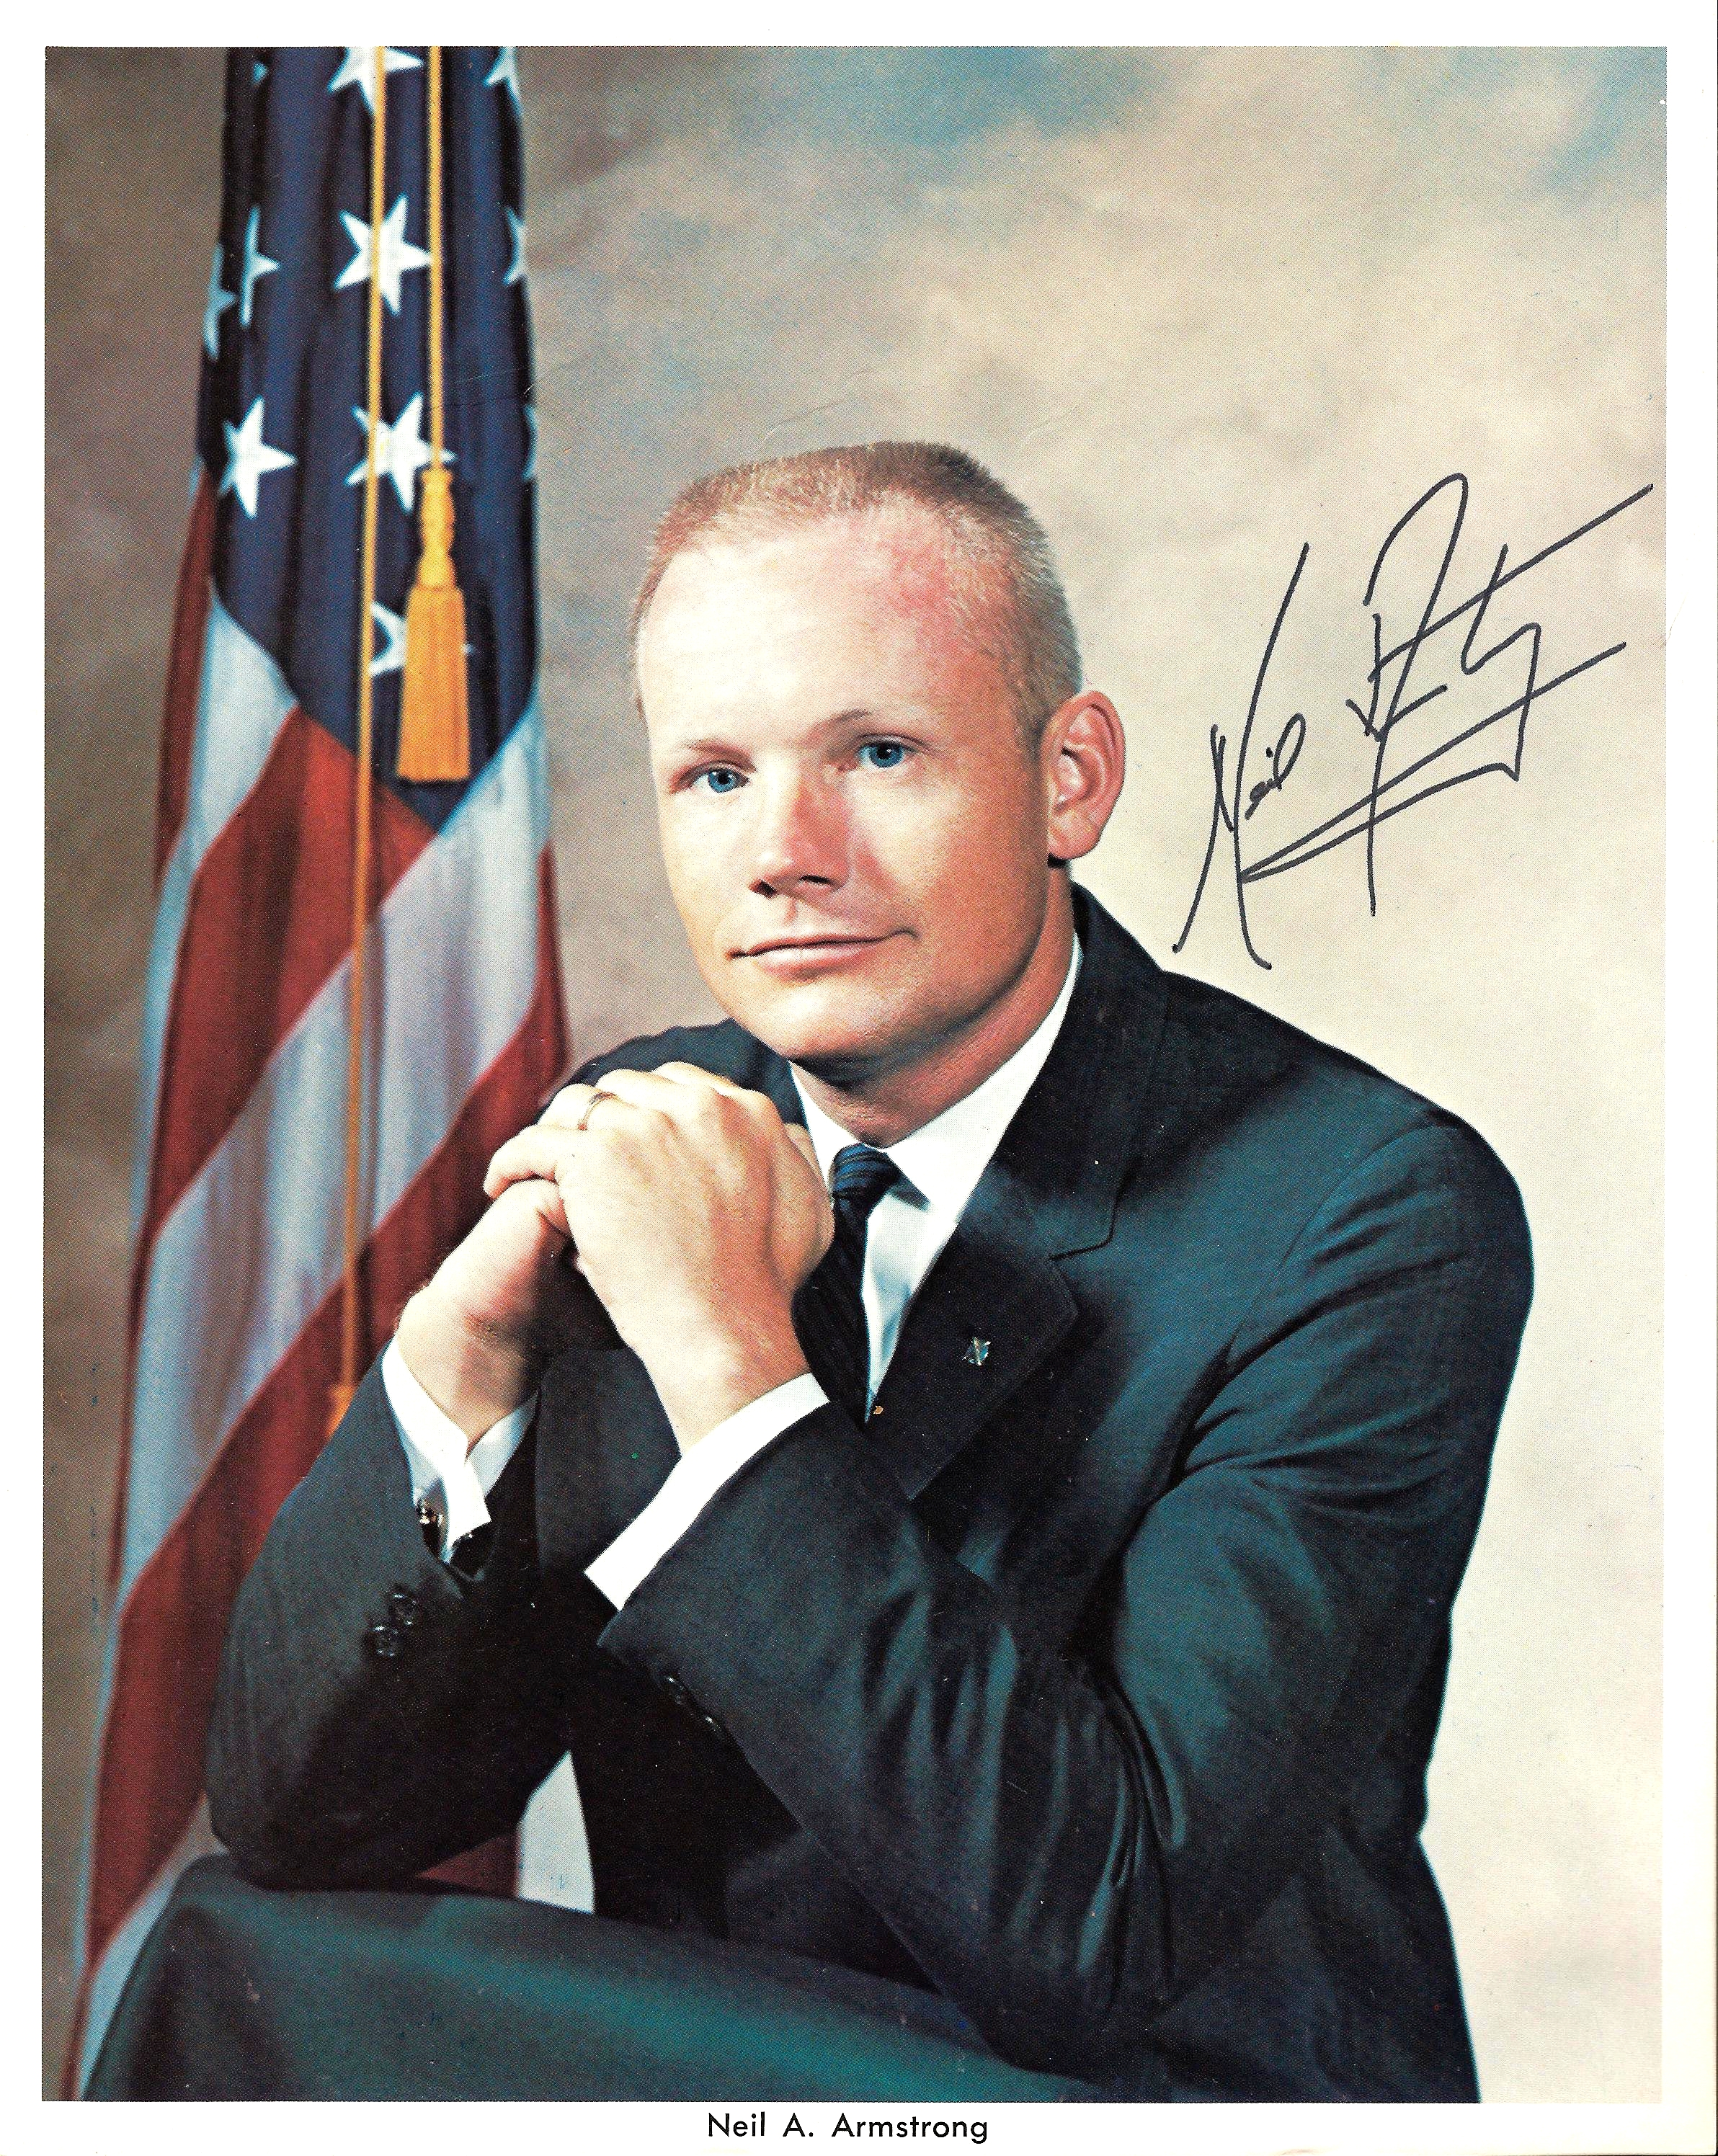 neil armstrong 15 years old - photo #40